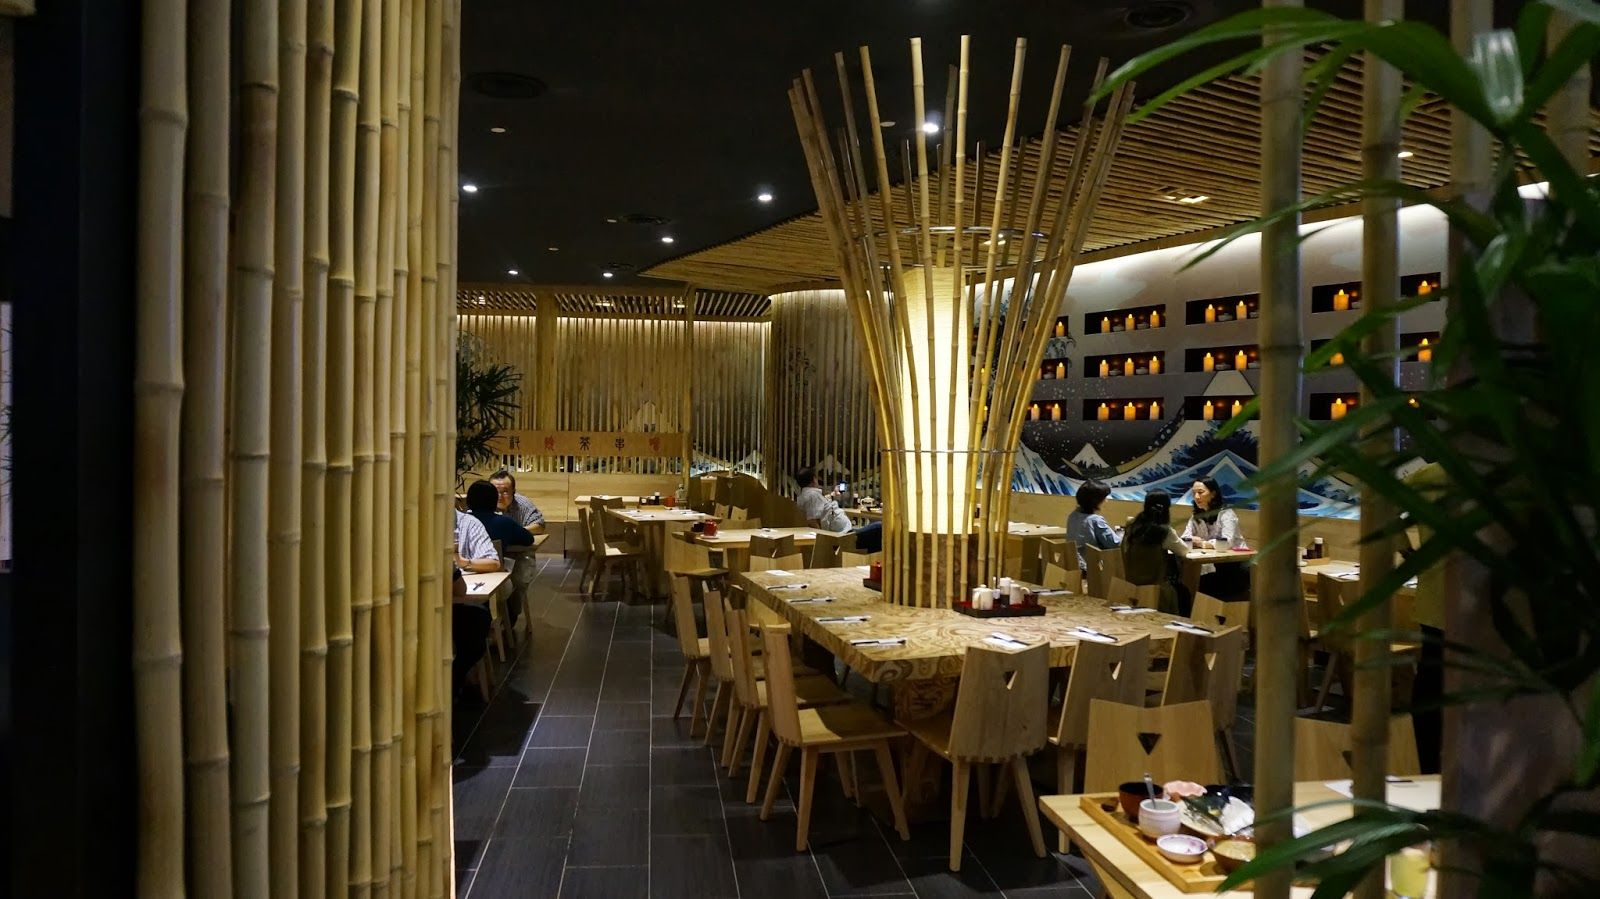 Decorating Bamboo Ideas Interior Design Japanese Restaurant With Decoration Utilizing